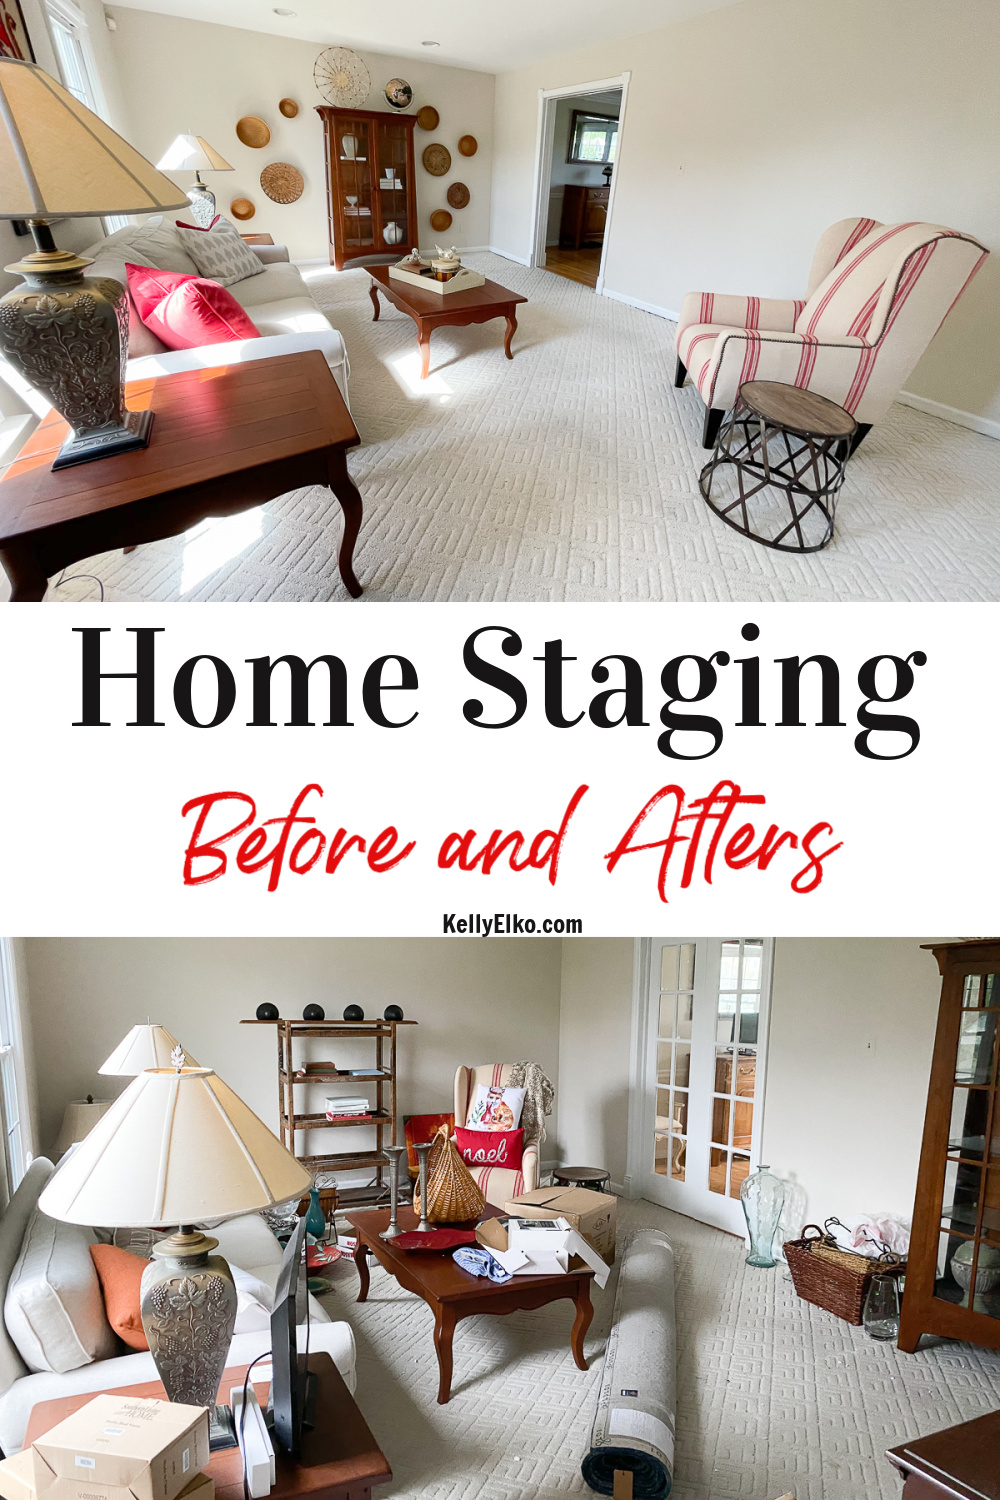 Home Staging Tips - You won't believe the before and after photos! kellyelko.com